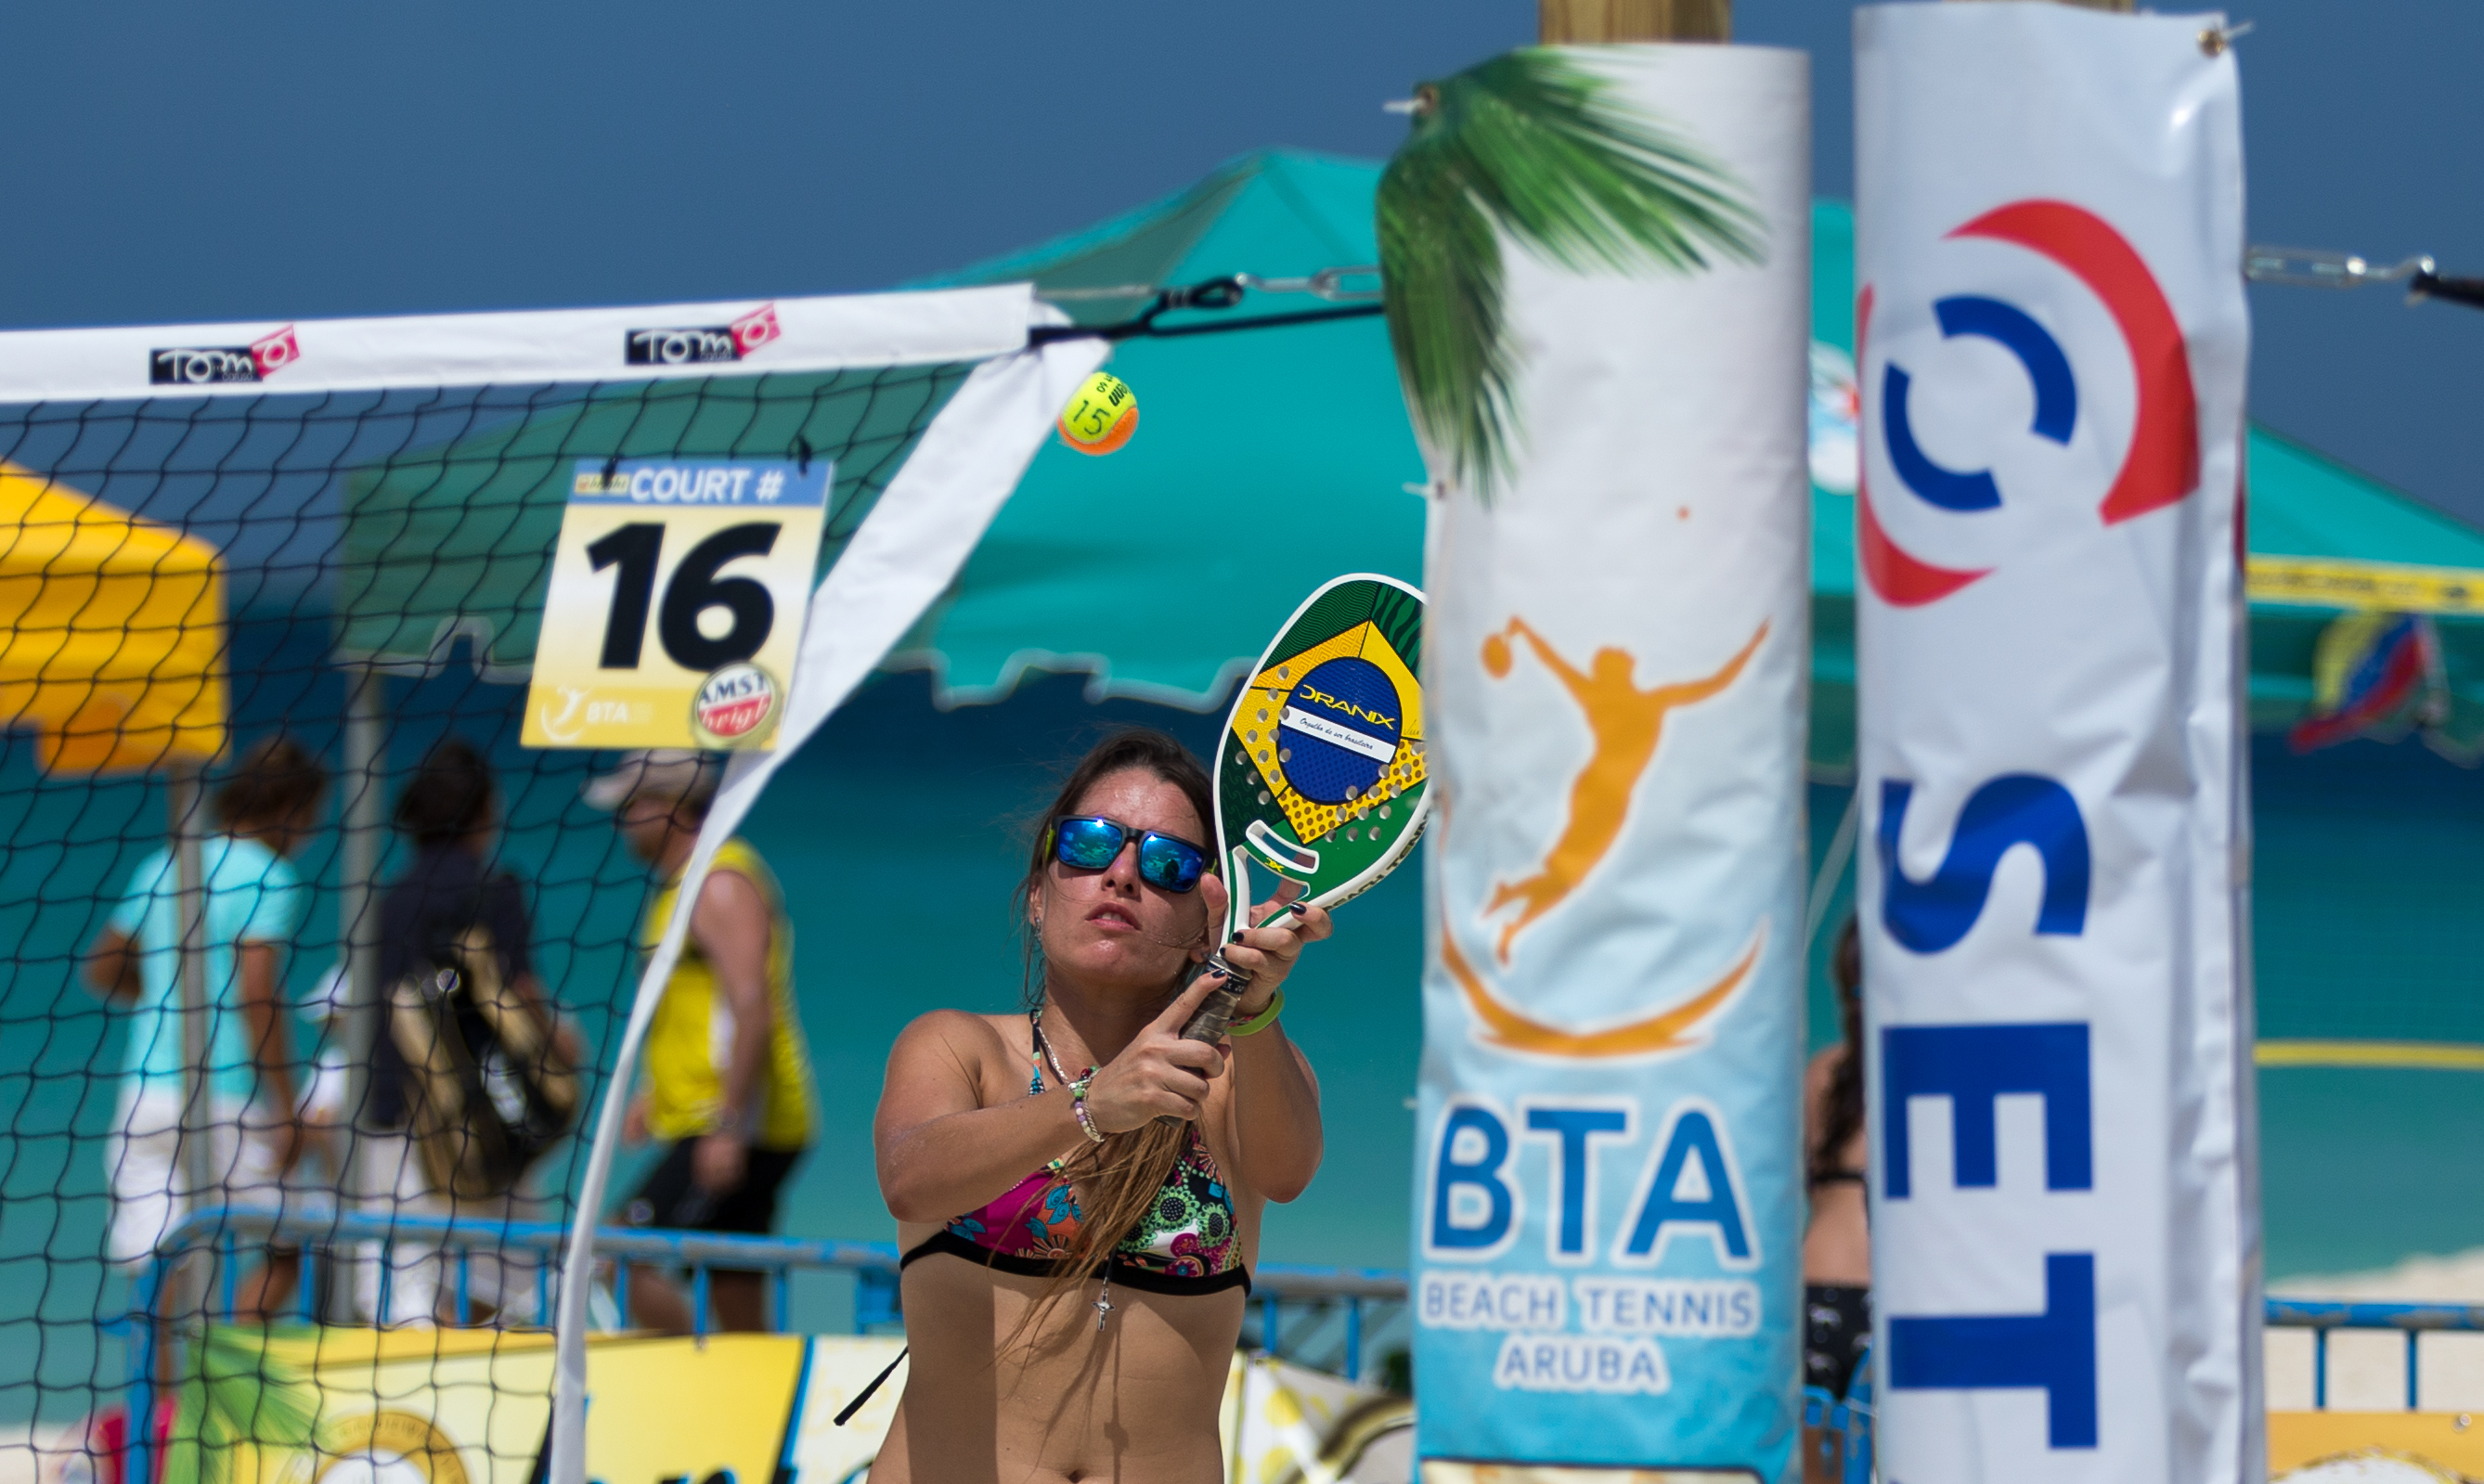 BTA Beach Tennis in Aruba